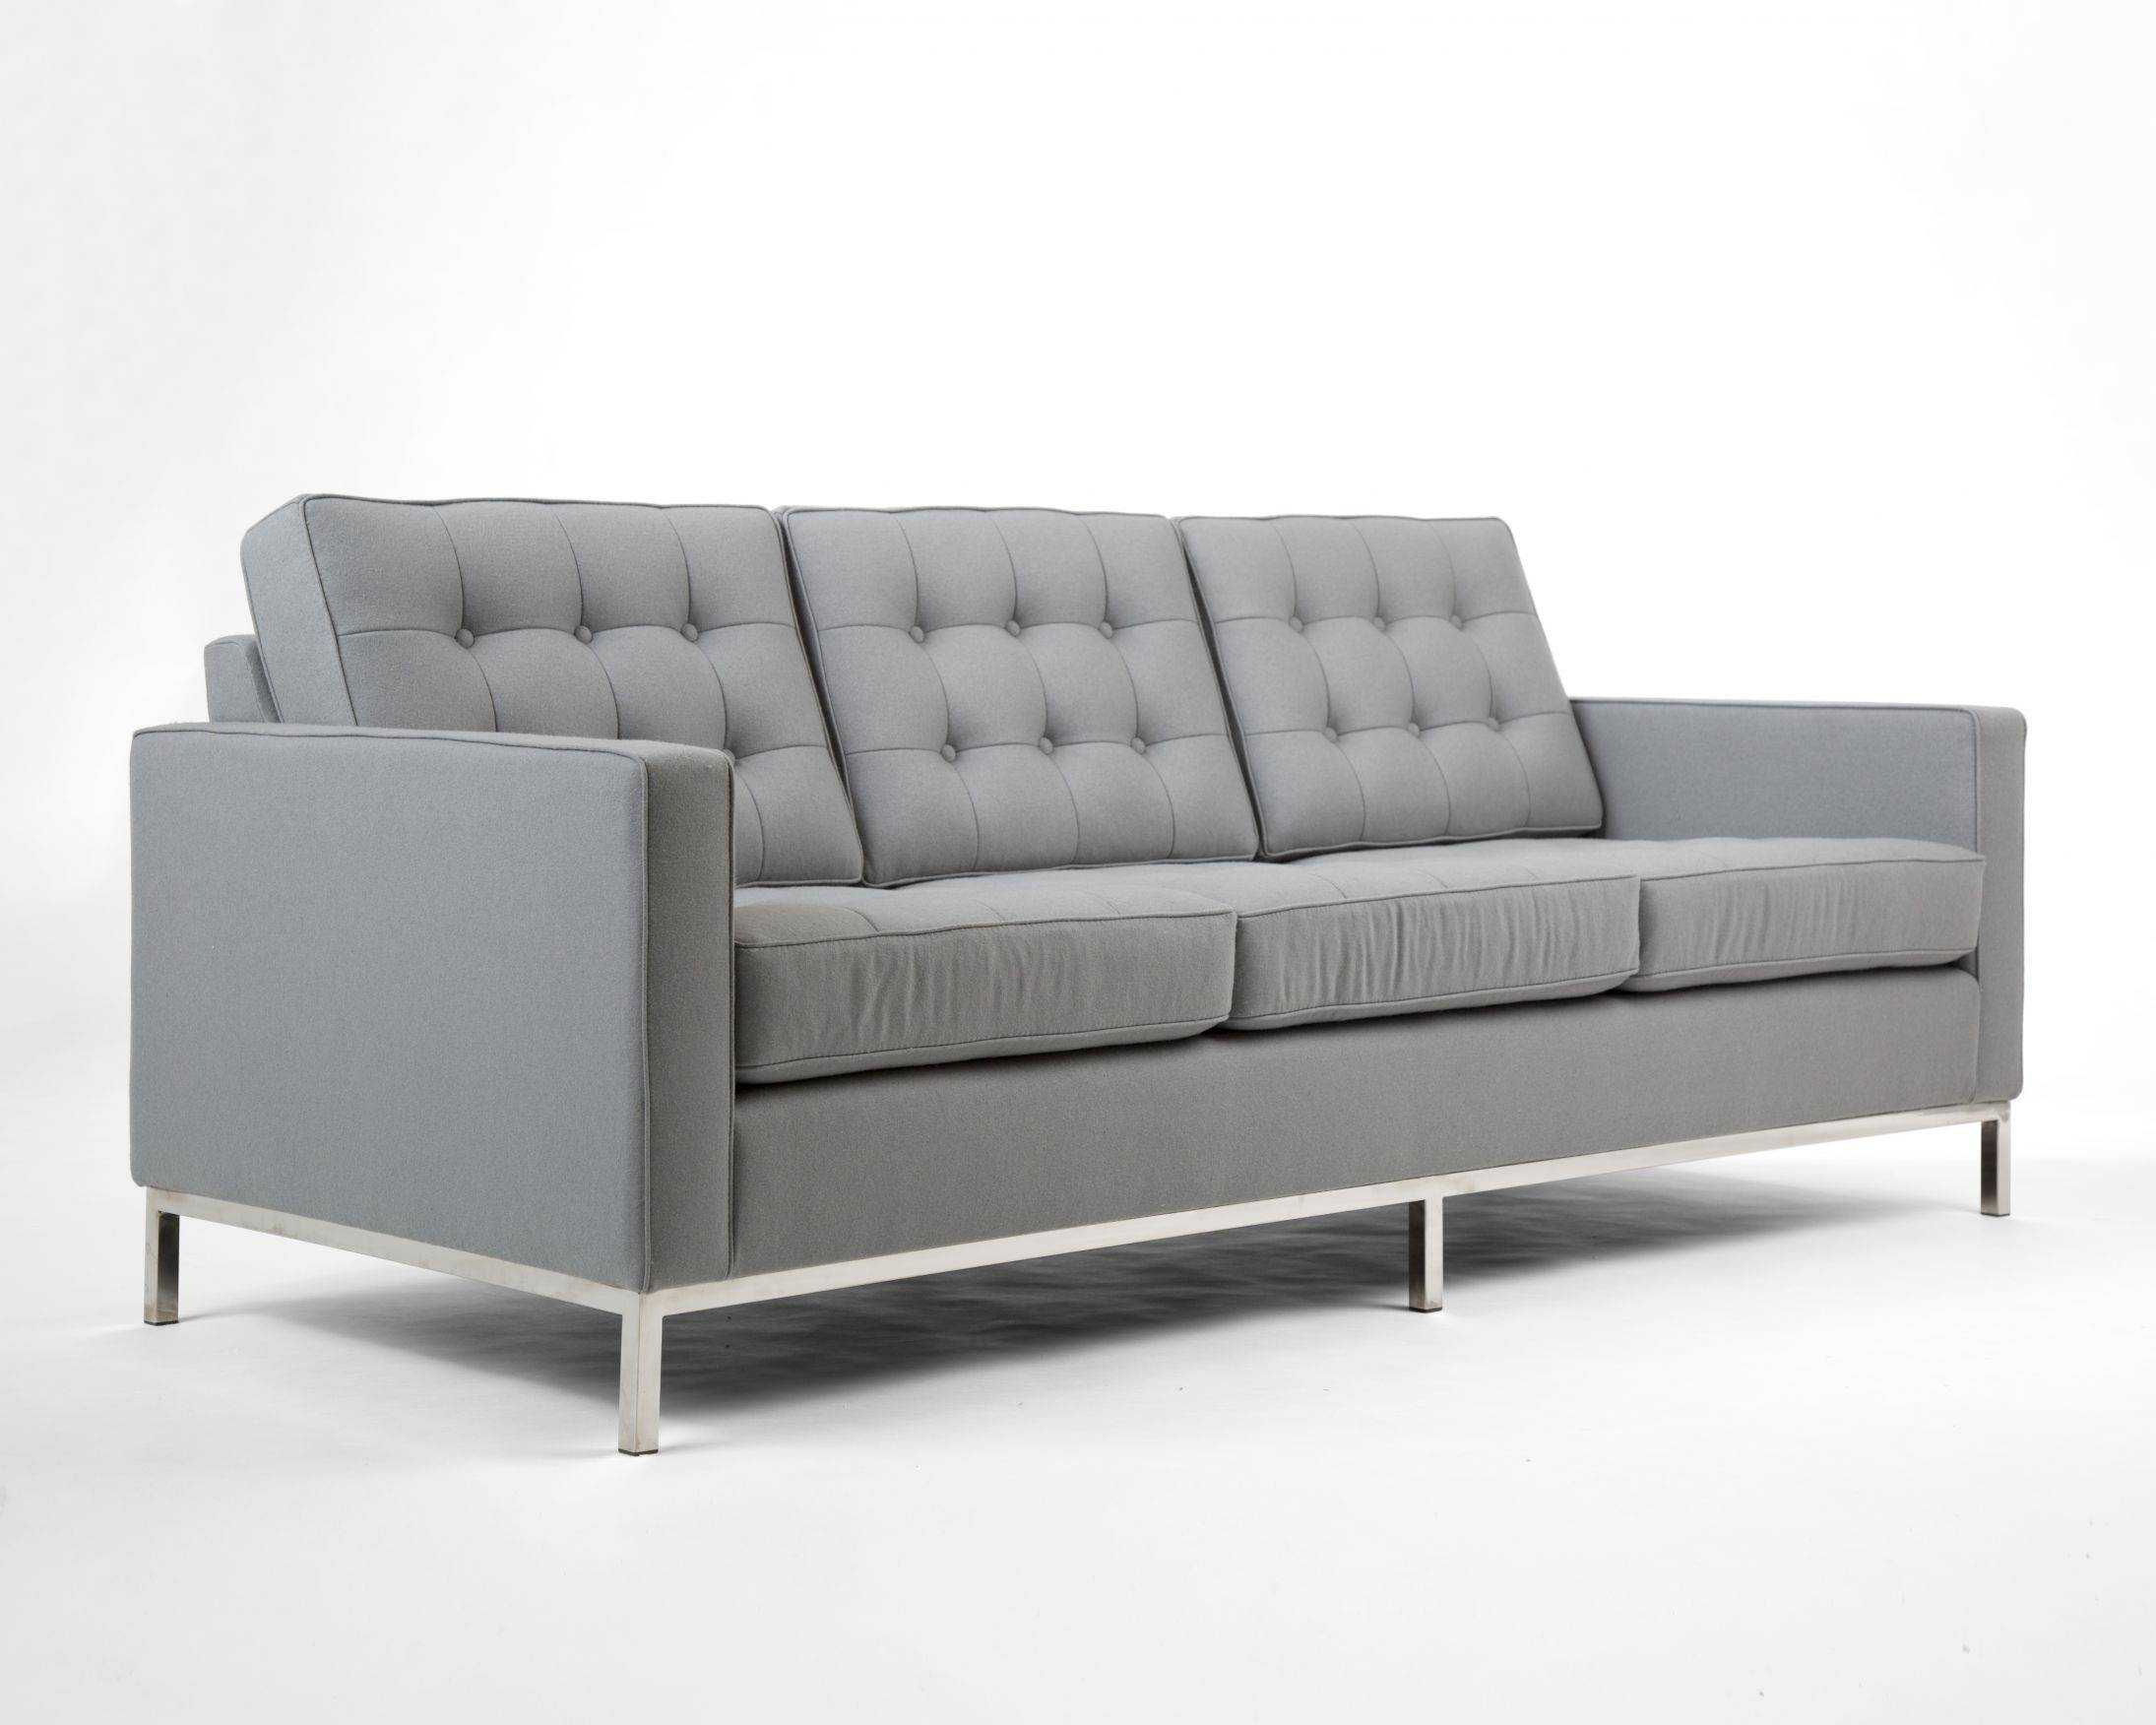 Florence Sofa | Reproduction | Mid Century Modern with regard to Florence Large Sofas (Image 11 of 30)